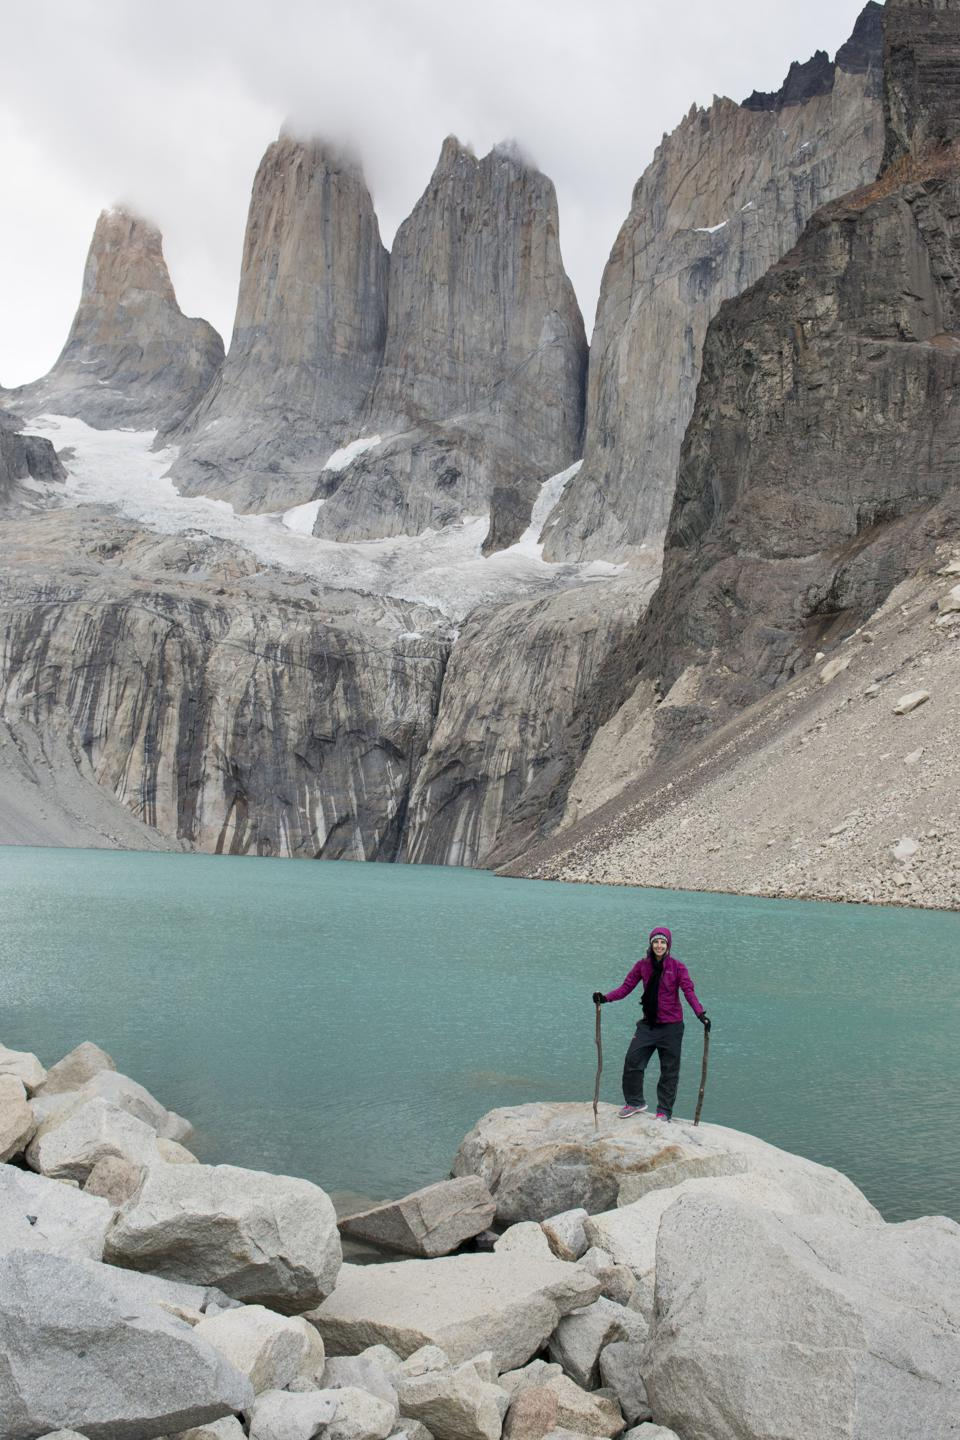 Picture in Chile millennial Mazurek recommends investing in good adventure equipment.